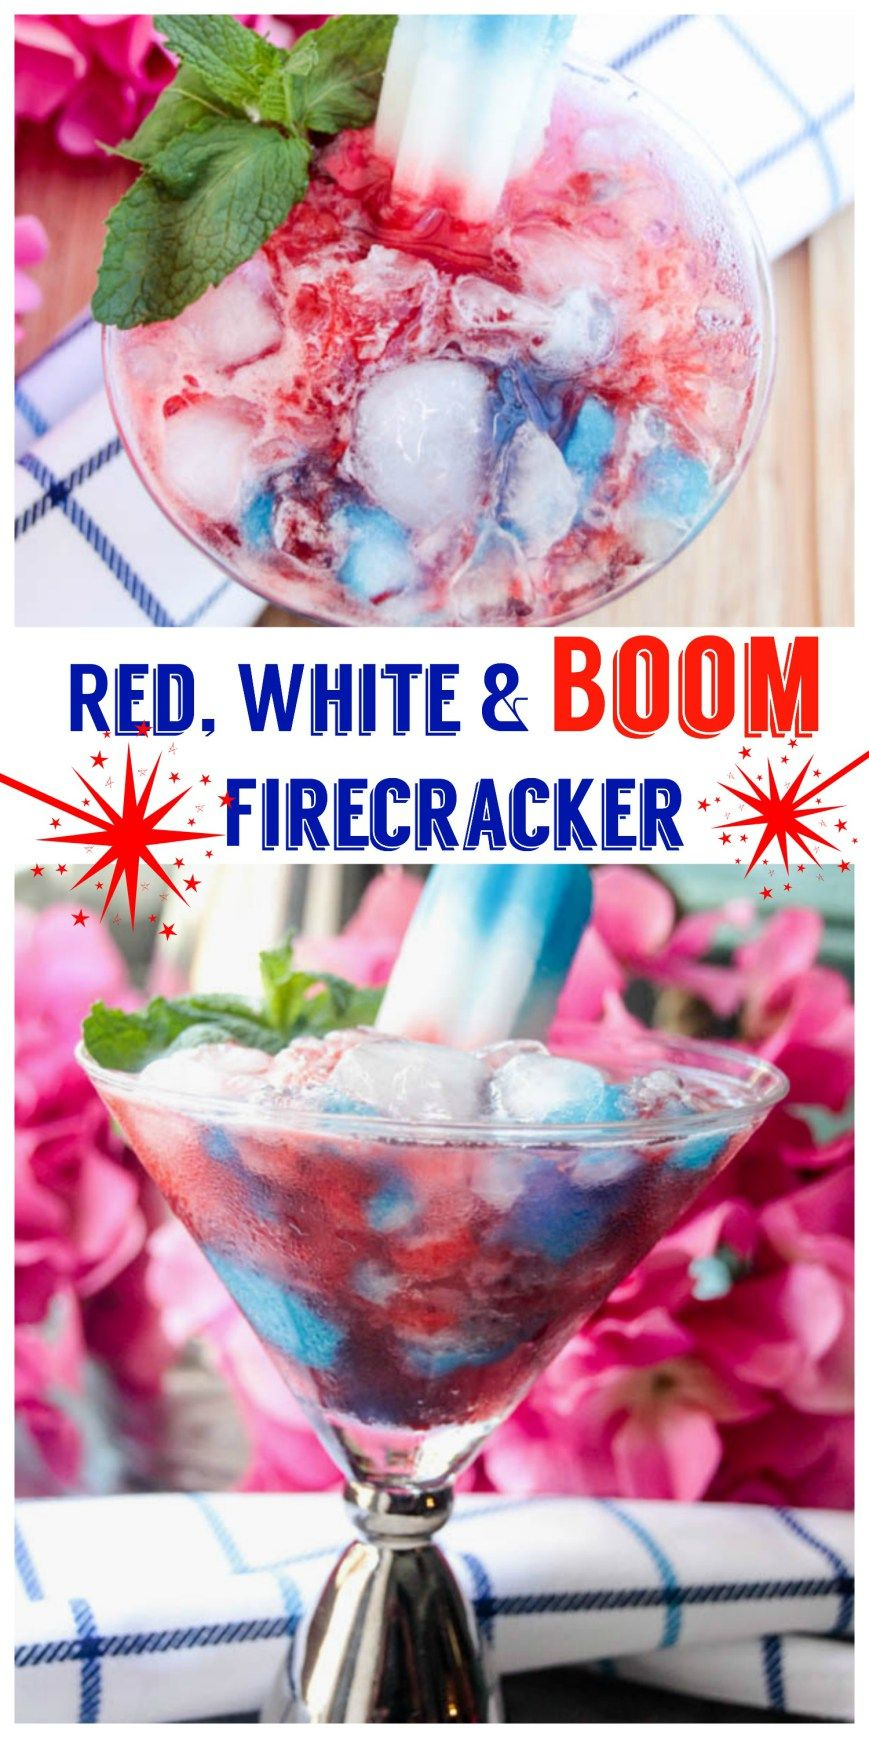 The Firecracker Popsicle is the starting point for this grown up and fun summer aperitif. We mixed in a dram of Smirnoff Red, White & Berry vodka which matched our tricolor theme perfectly. A splash of prepared (or homemade lemonade if you got time for that kinda thing) and a couple of big ounces of Deep Eddy's Lemon vodka and shards of crushed ice